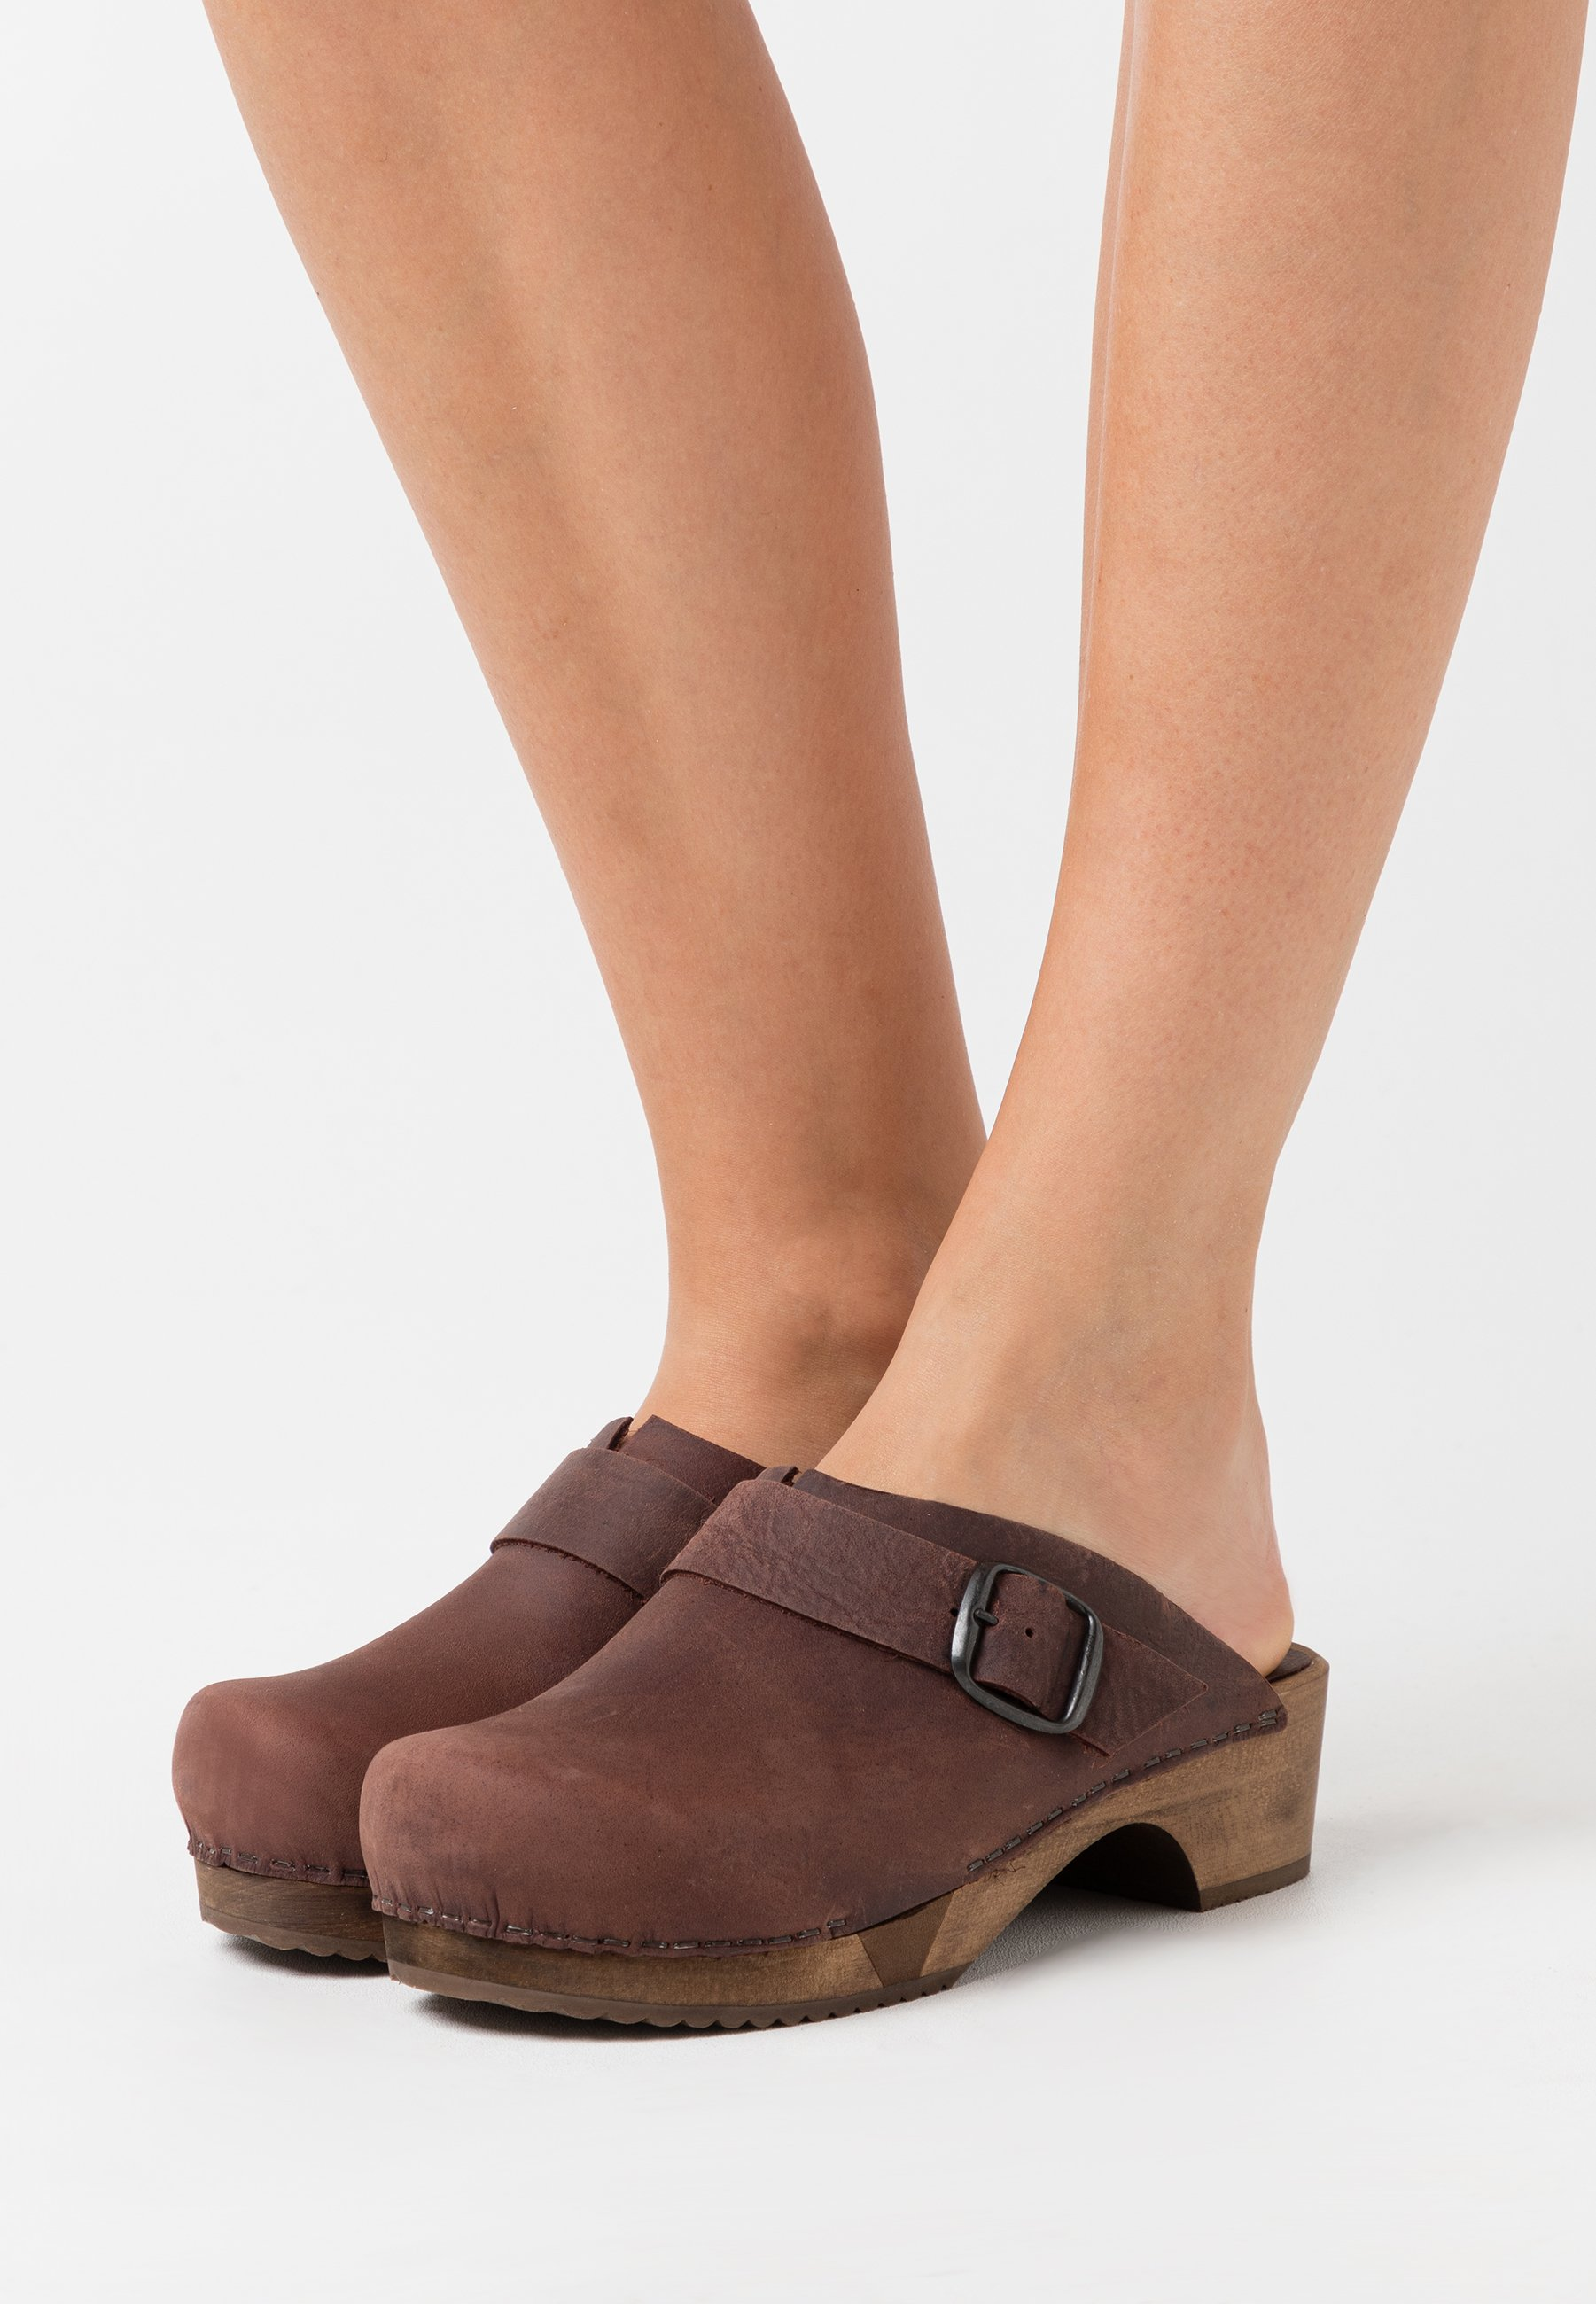 Sanita LILI OPEN - Sabots - antique brown - Mules & Sabots femme Original